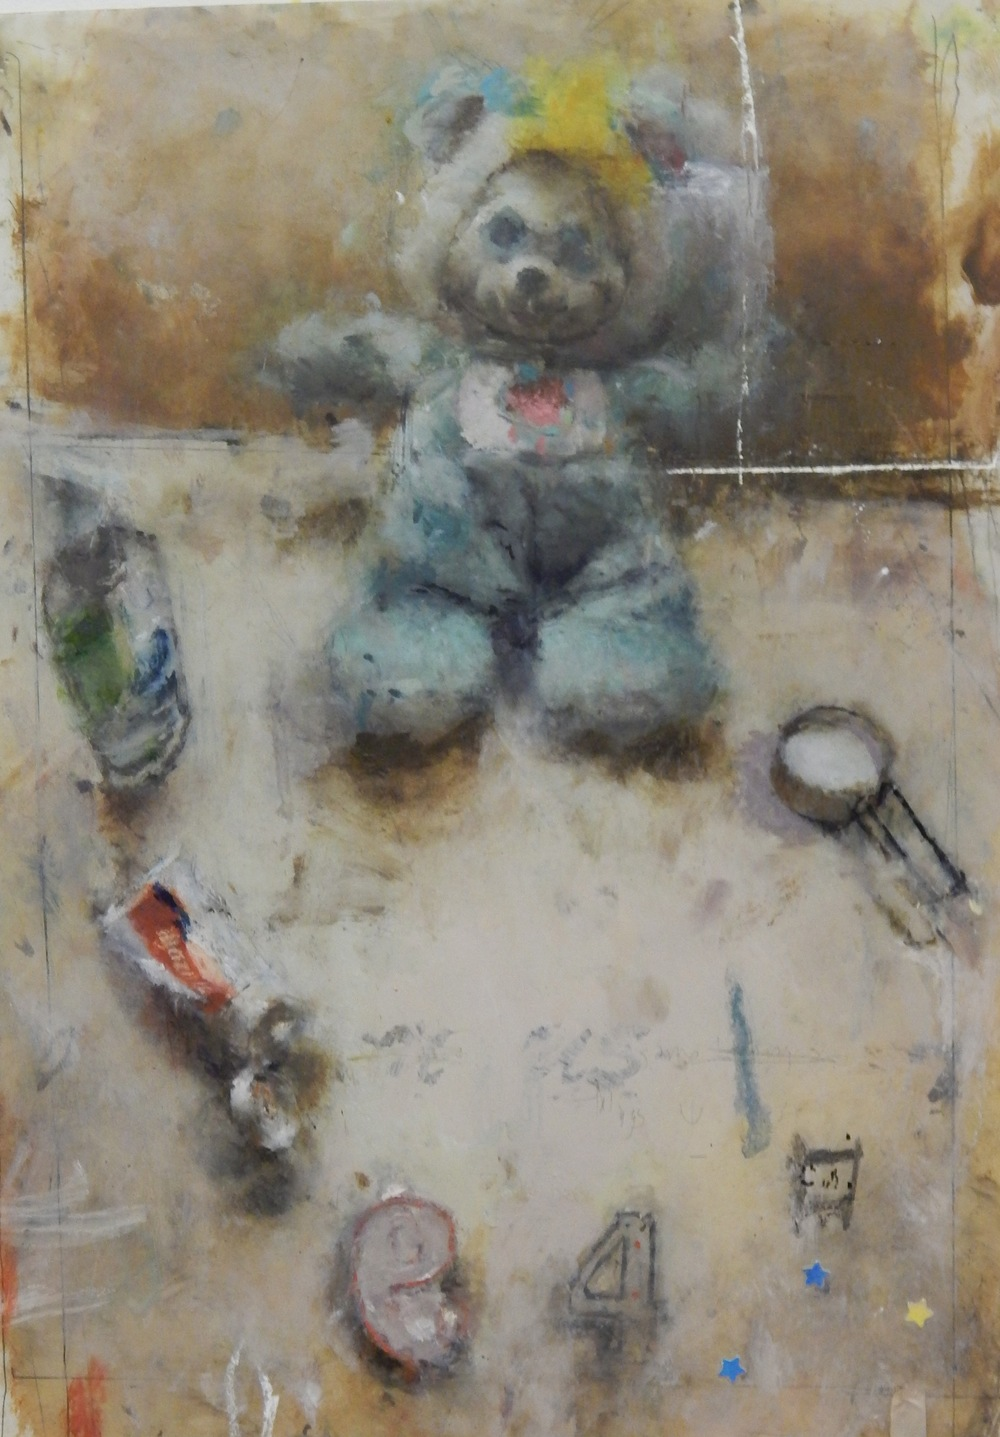 Still Life with Bear Doll